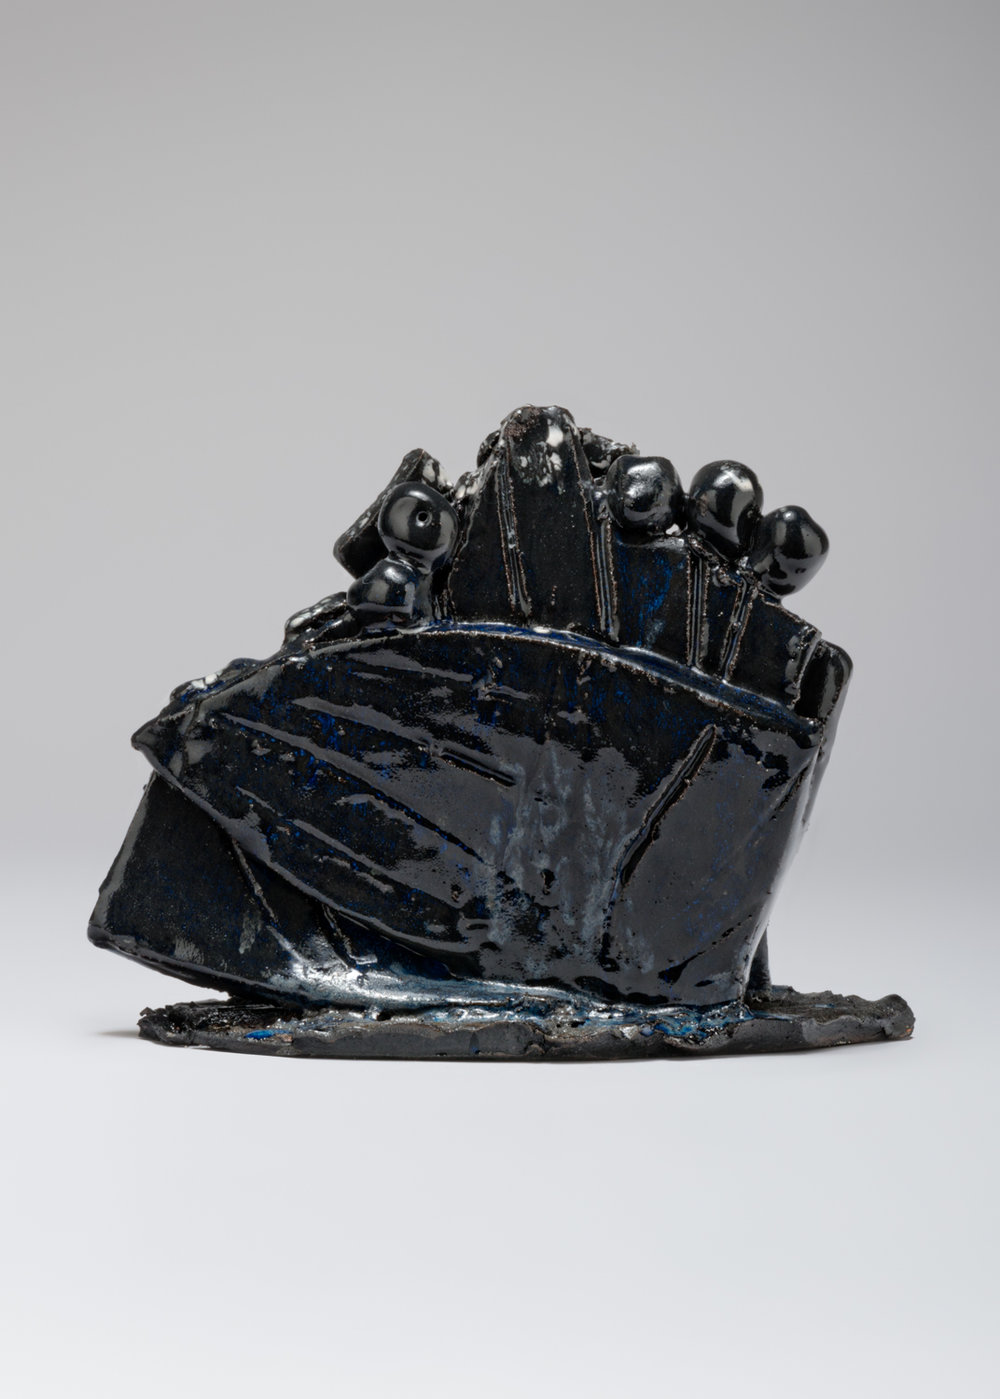 William J. O'Brien  Untitled  2017 Glazed ceramic 8 ¾h x 11 ½w x 4d in WOB1209